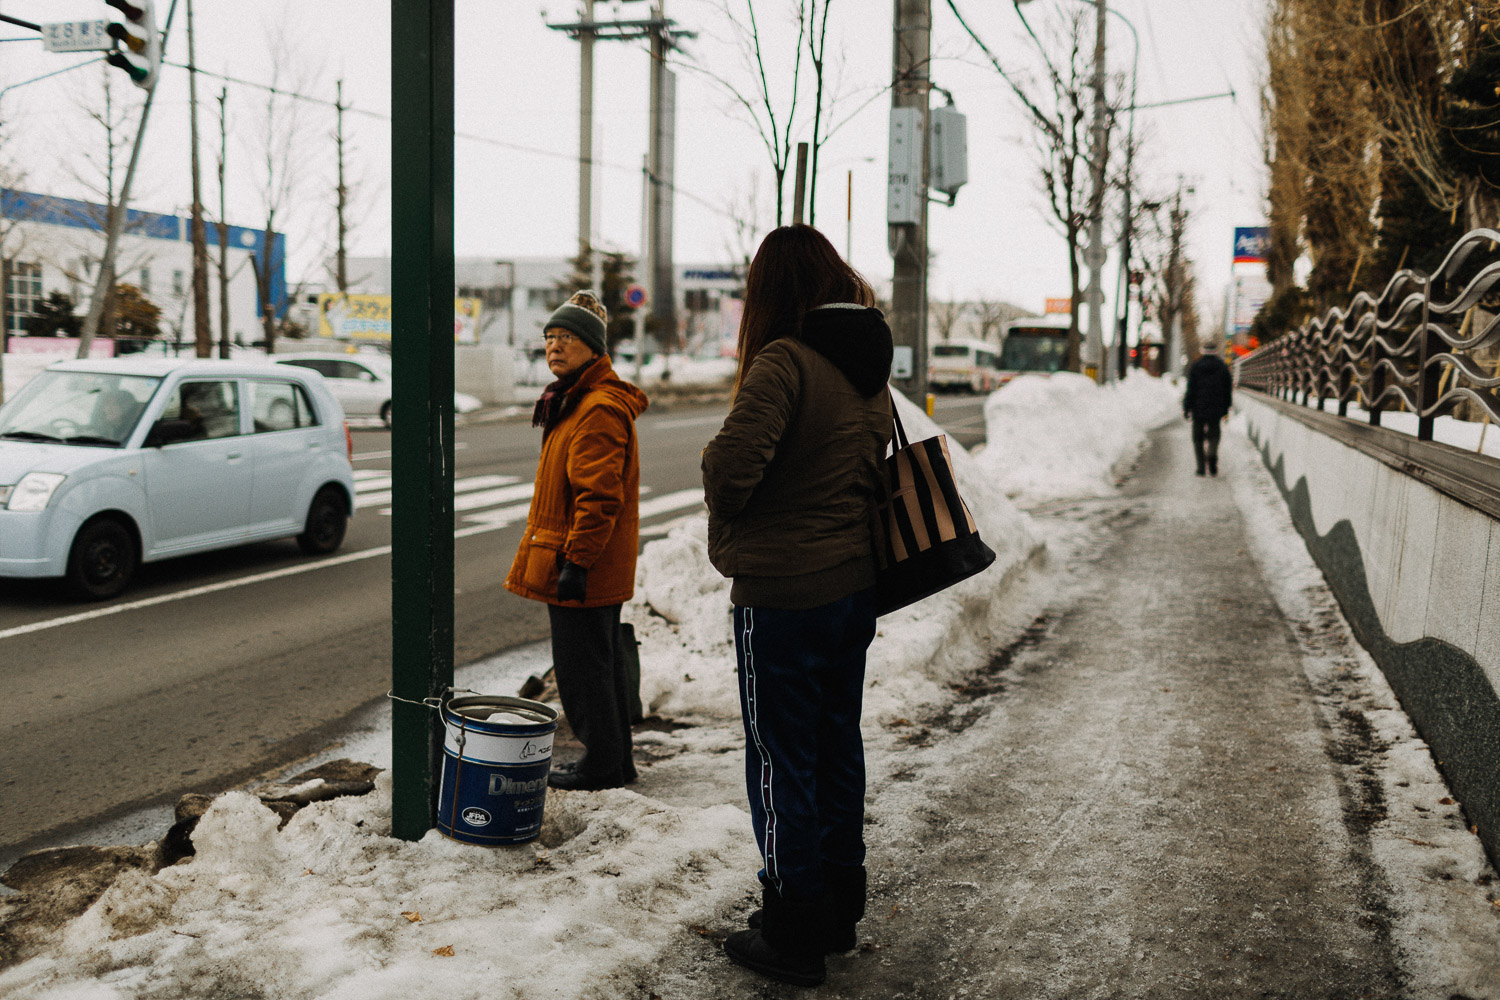 Image of two people waiting for bus